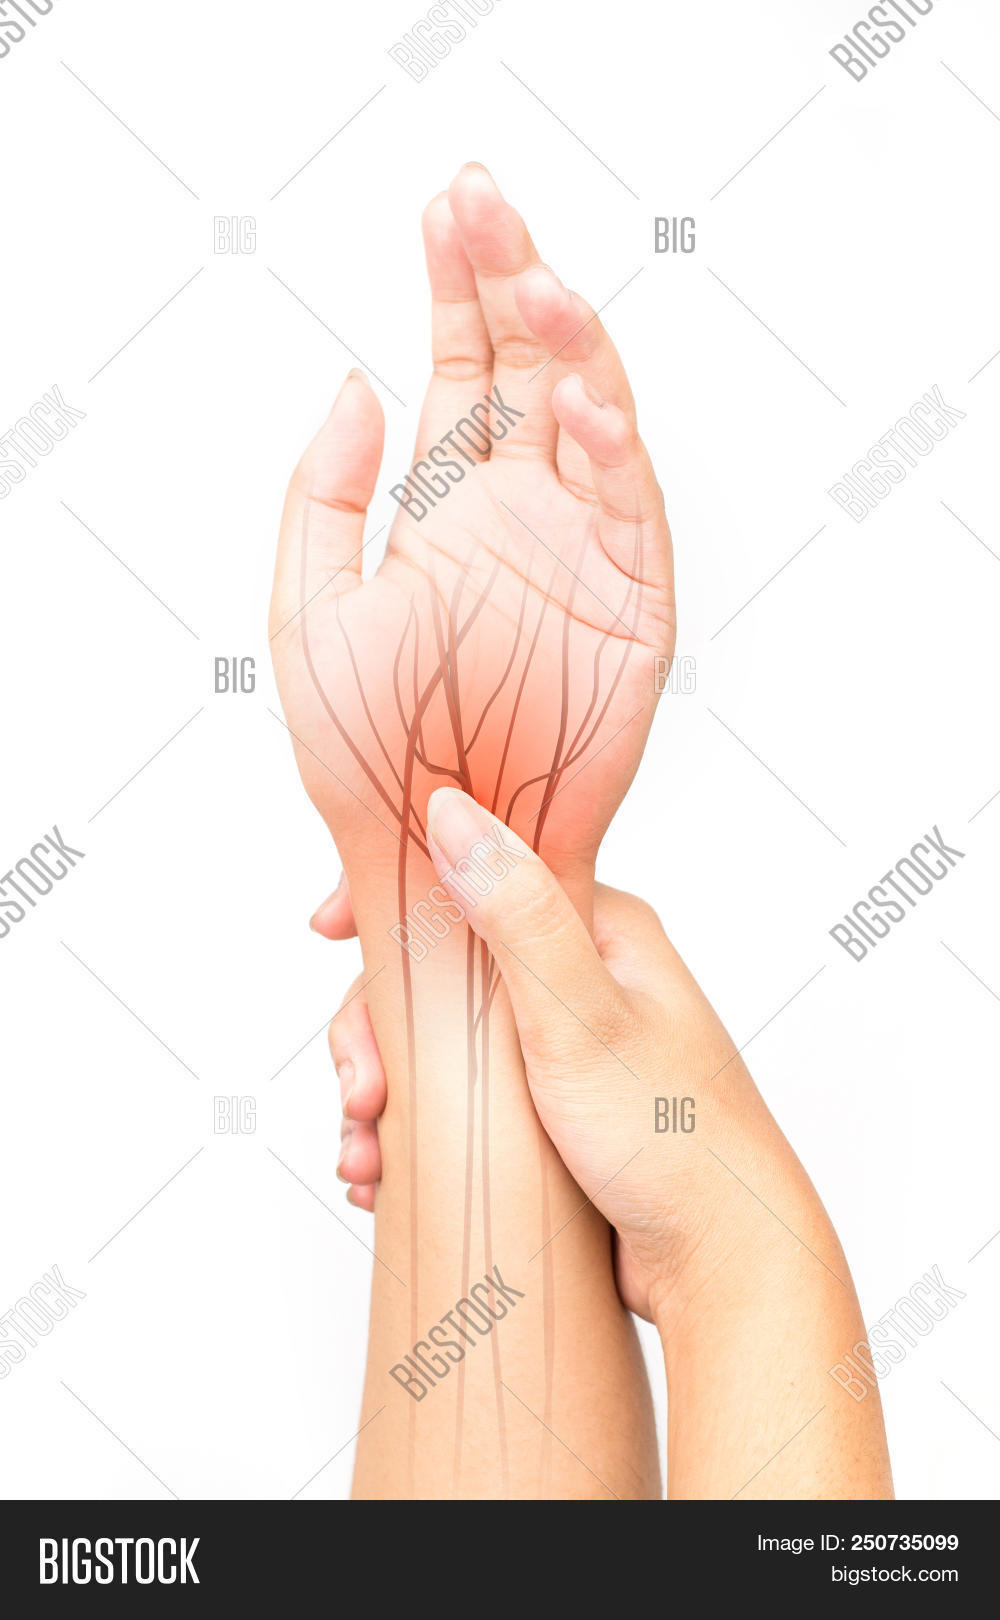 Wrist Nerve Pain Image Photo Free Trial Bigstock